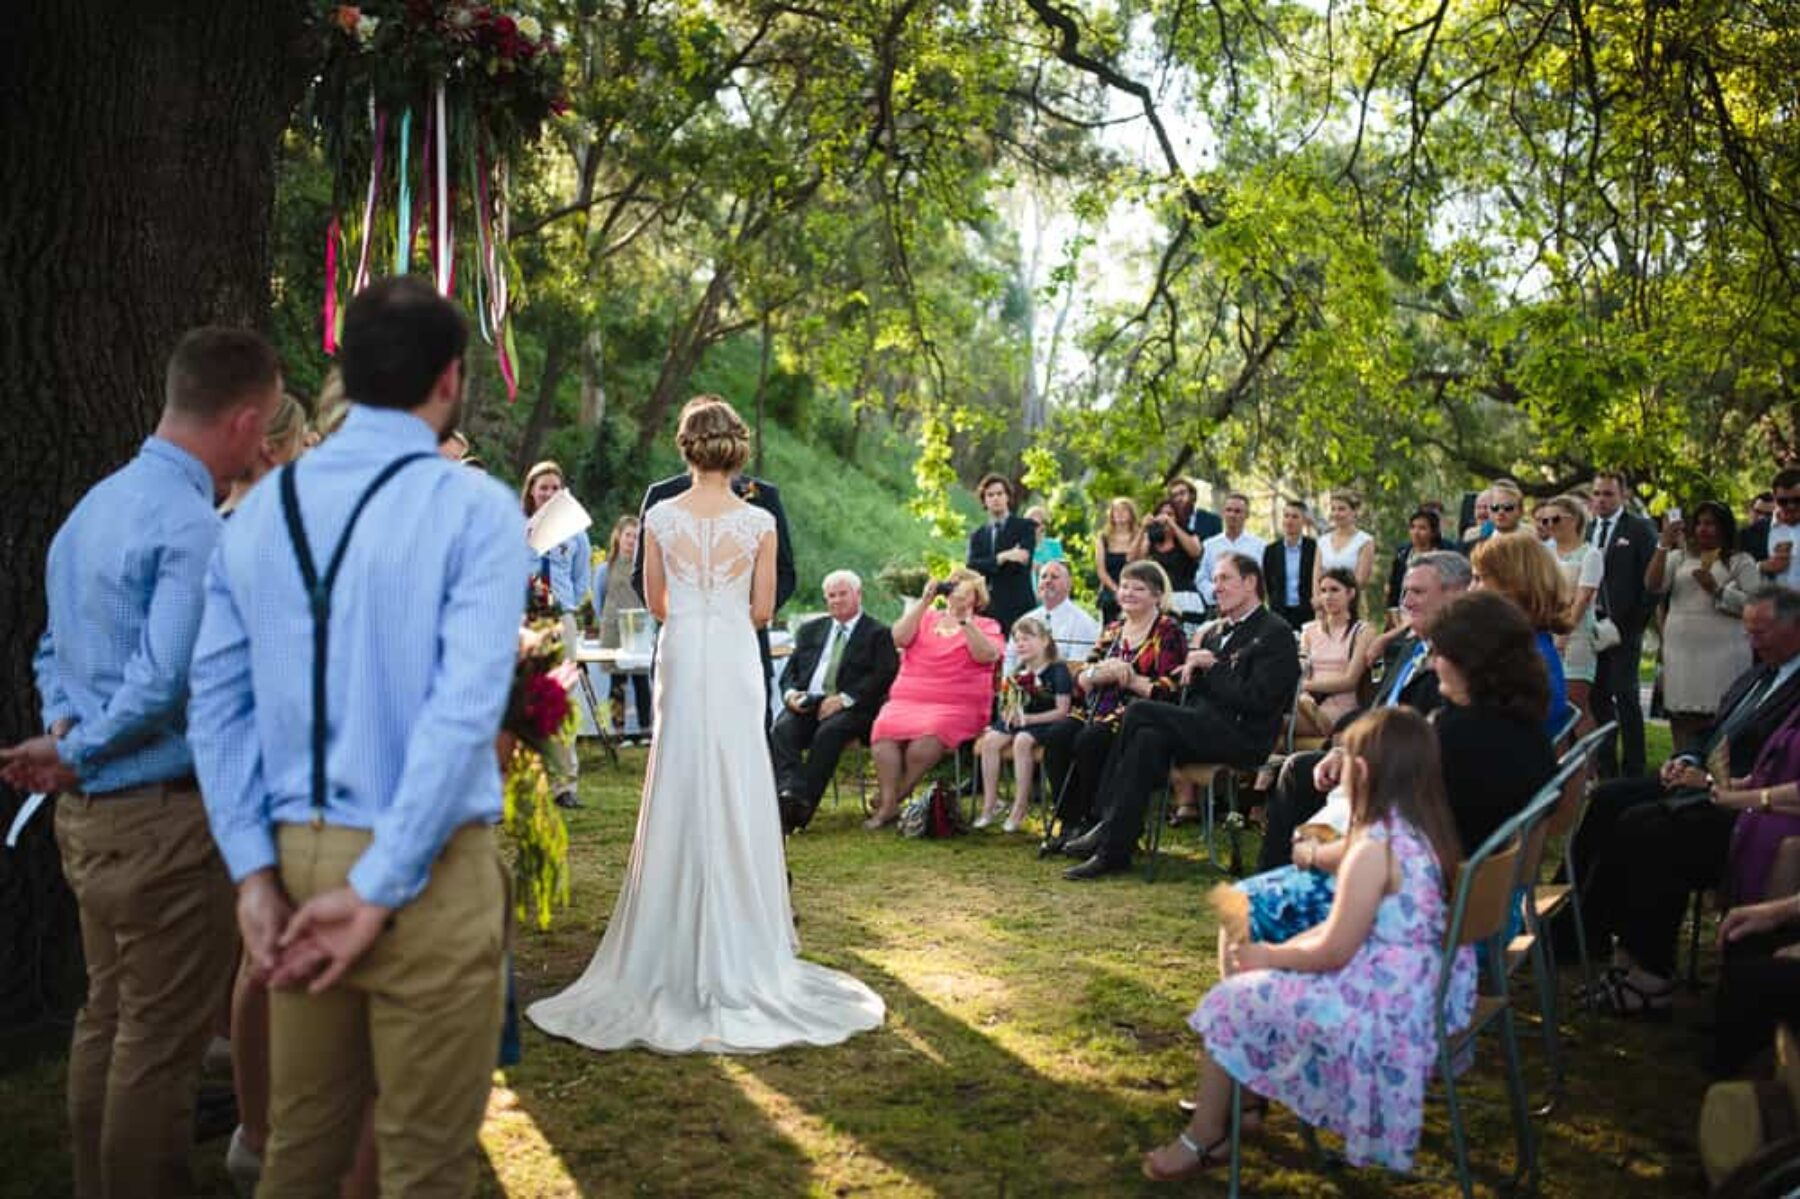 Collingwood Children's Farm Wedding / Photography by Pierre Curry